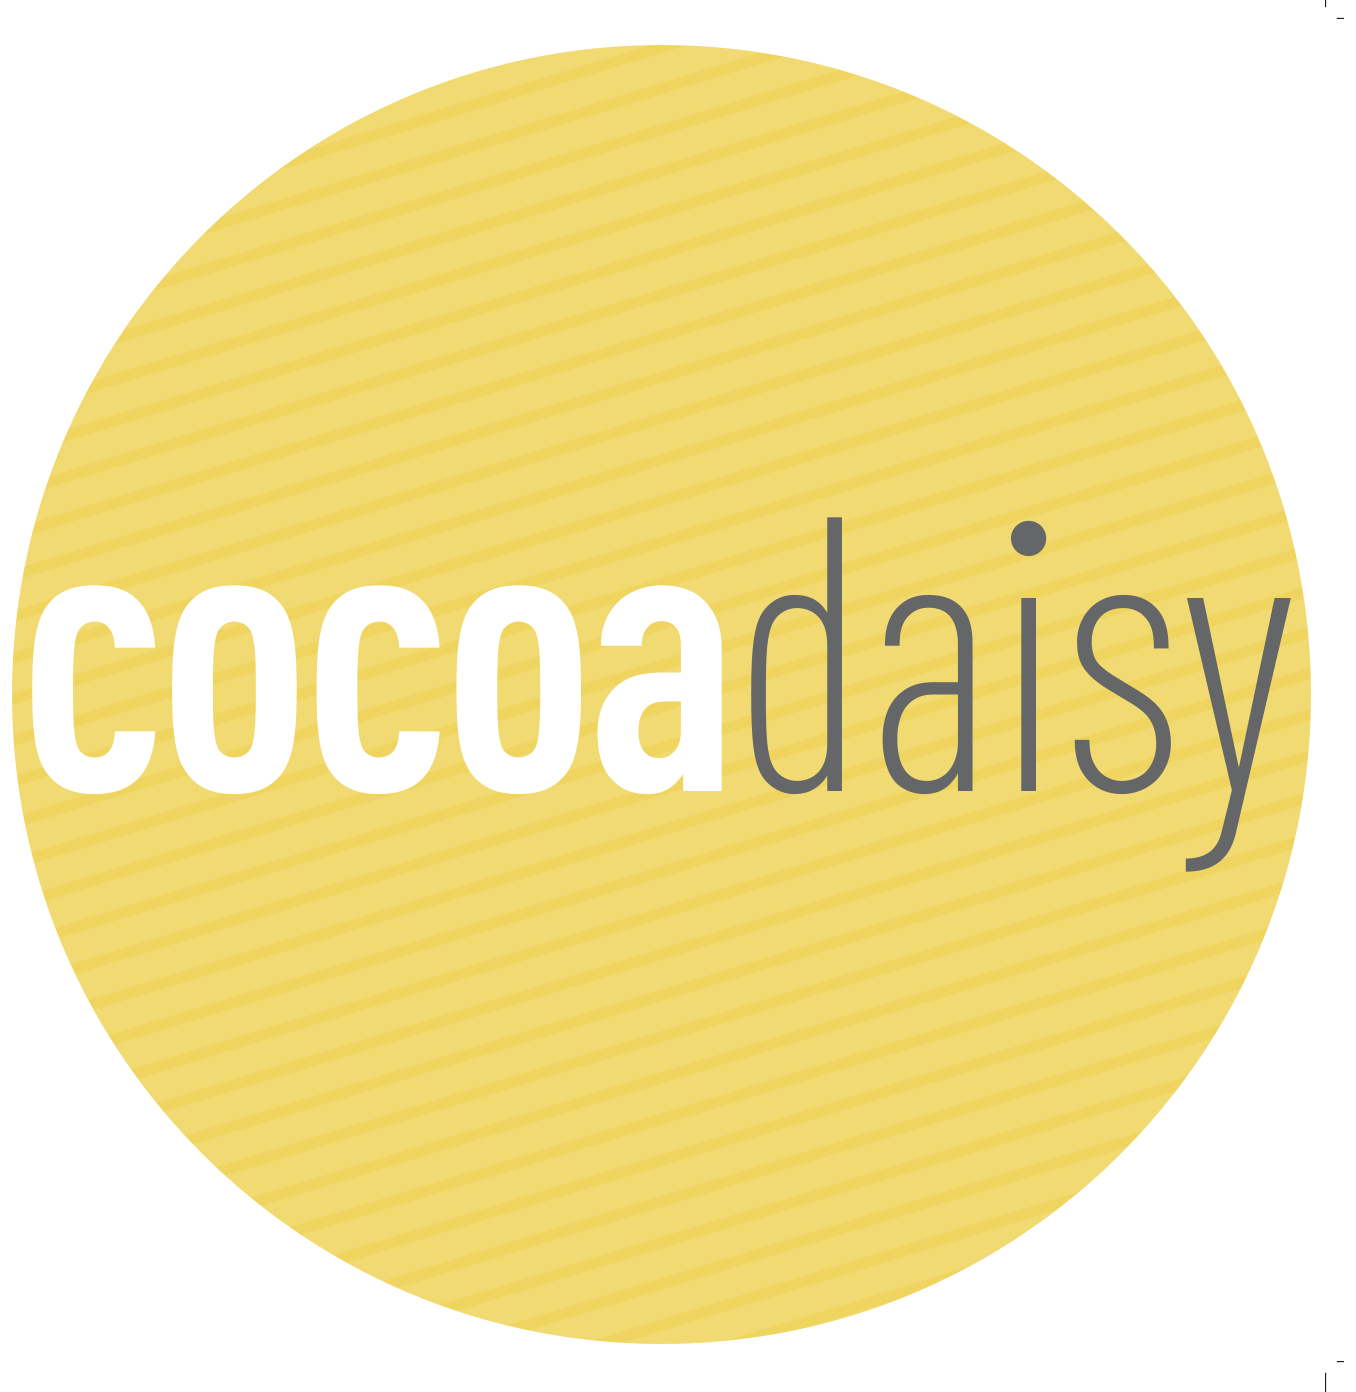 Cocoa Daisy Design Team